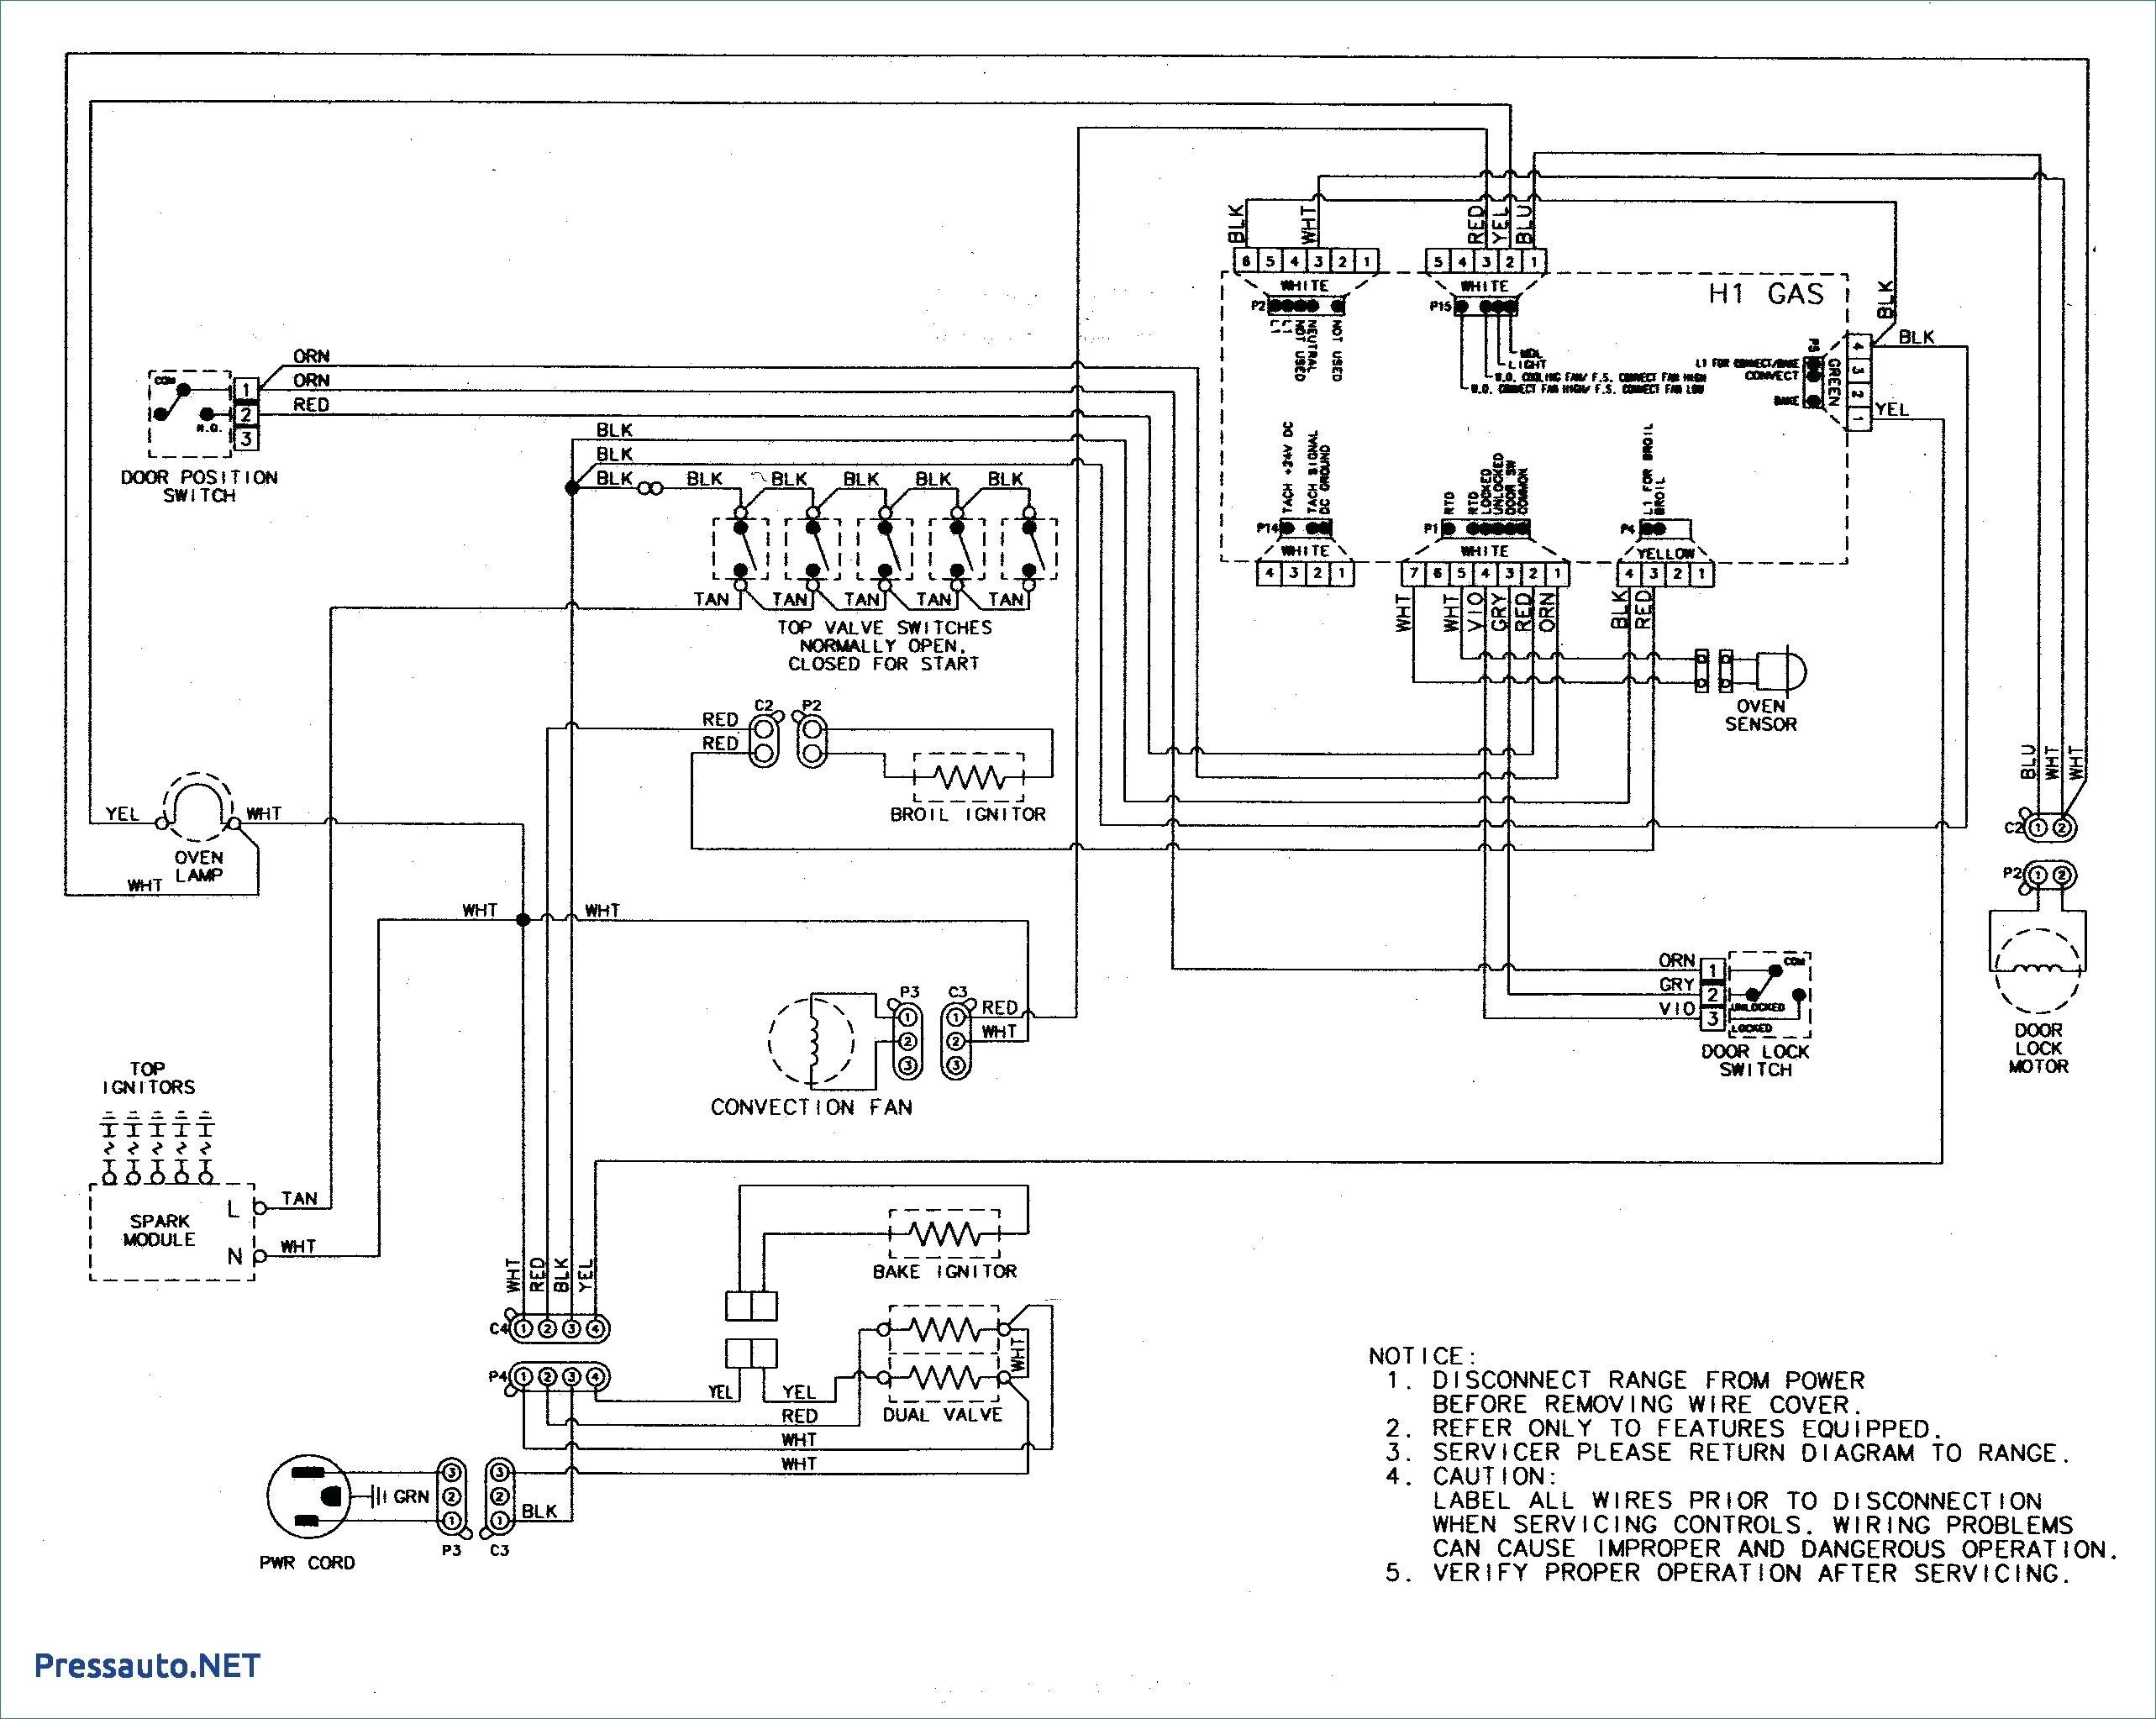 Auto Aircon Diagram Car Ac Working Diagram Car Diagram Car